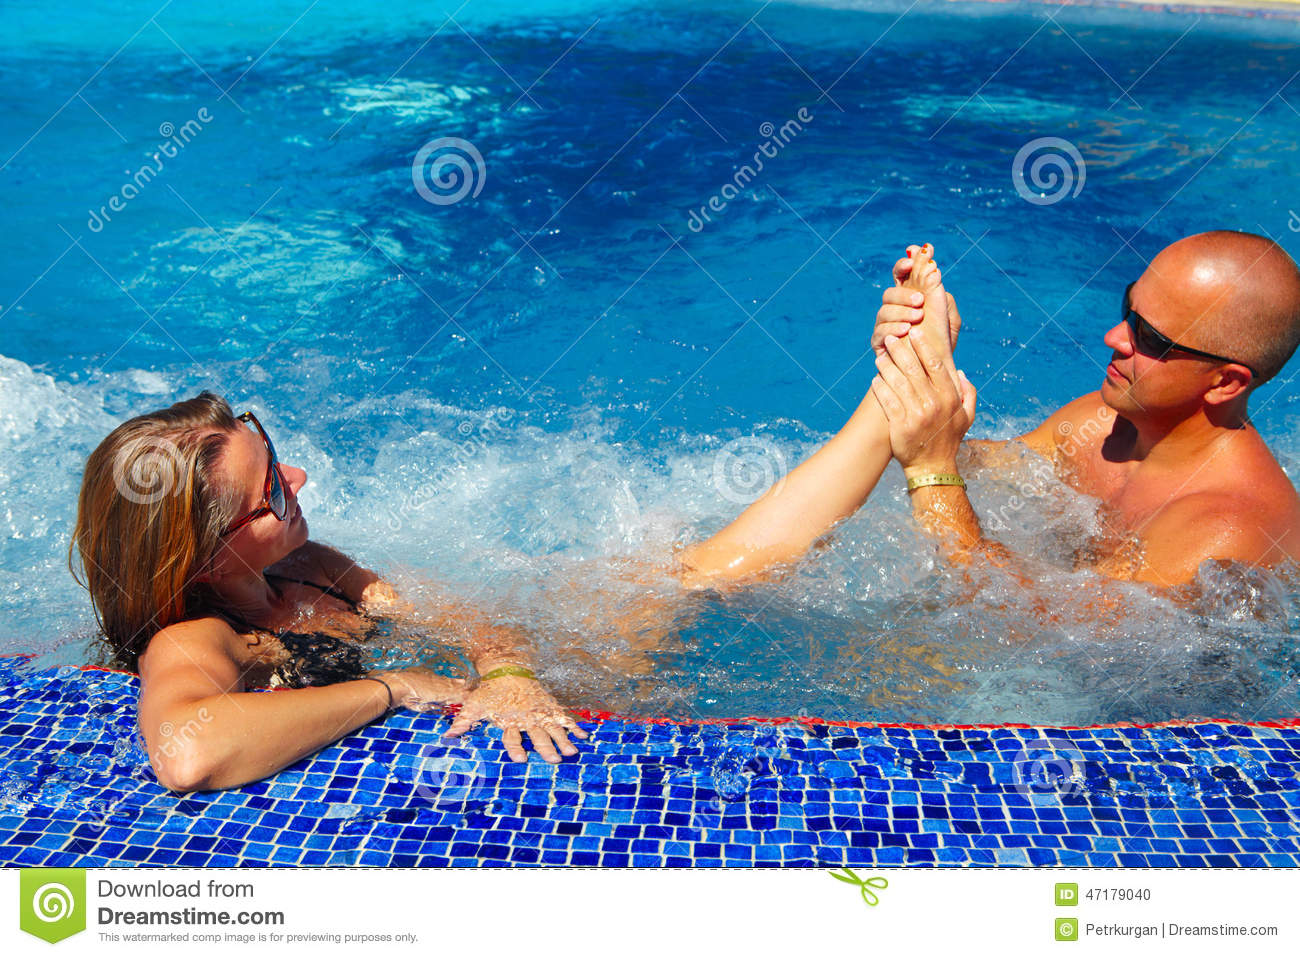 Foot massage in jacuzzi stock photo. Image of adult, person - 47179040